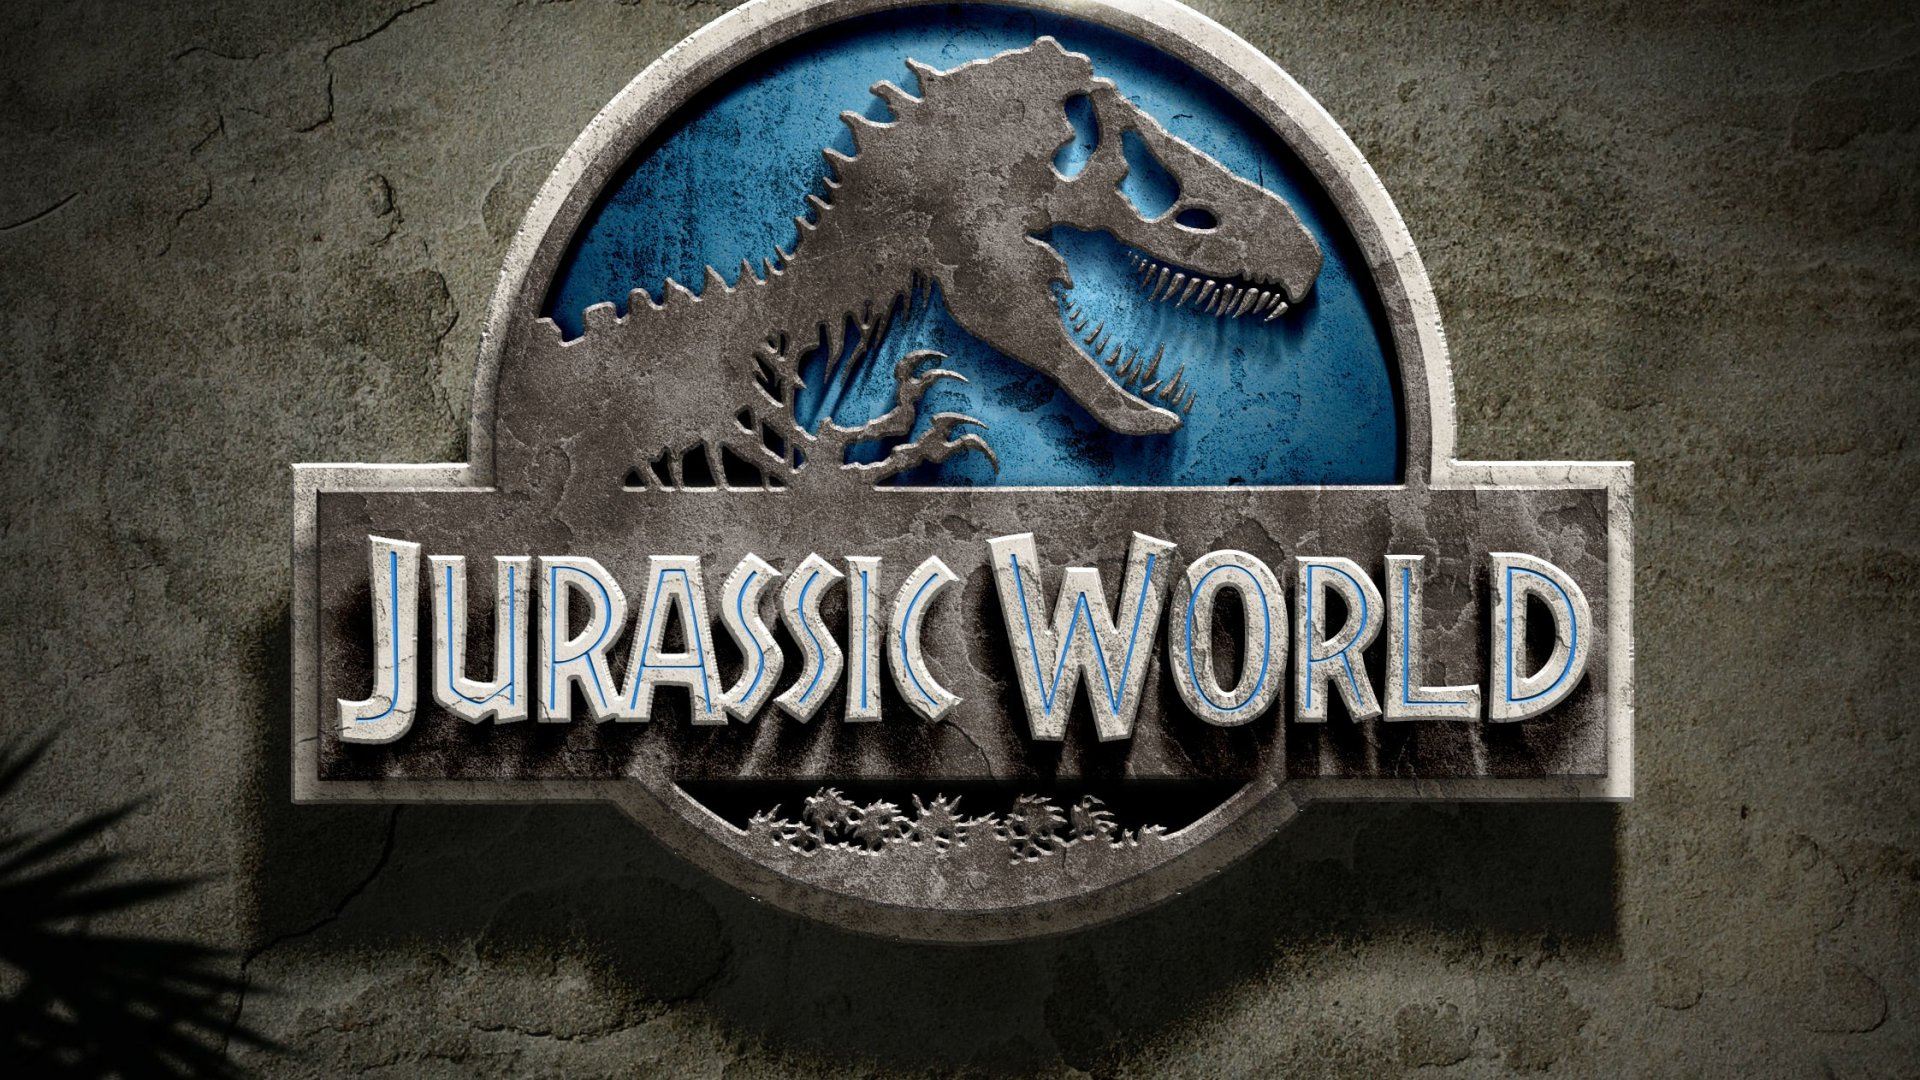 Jurassic World and The Logic of Safety